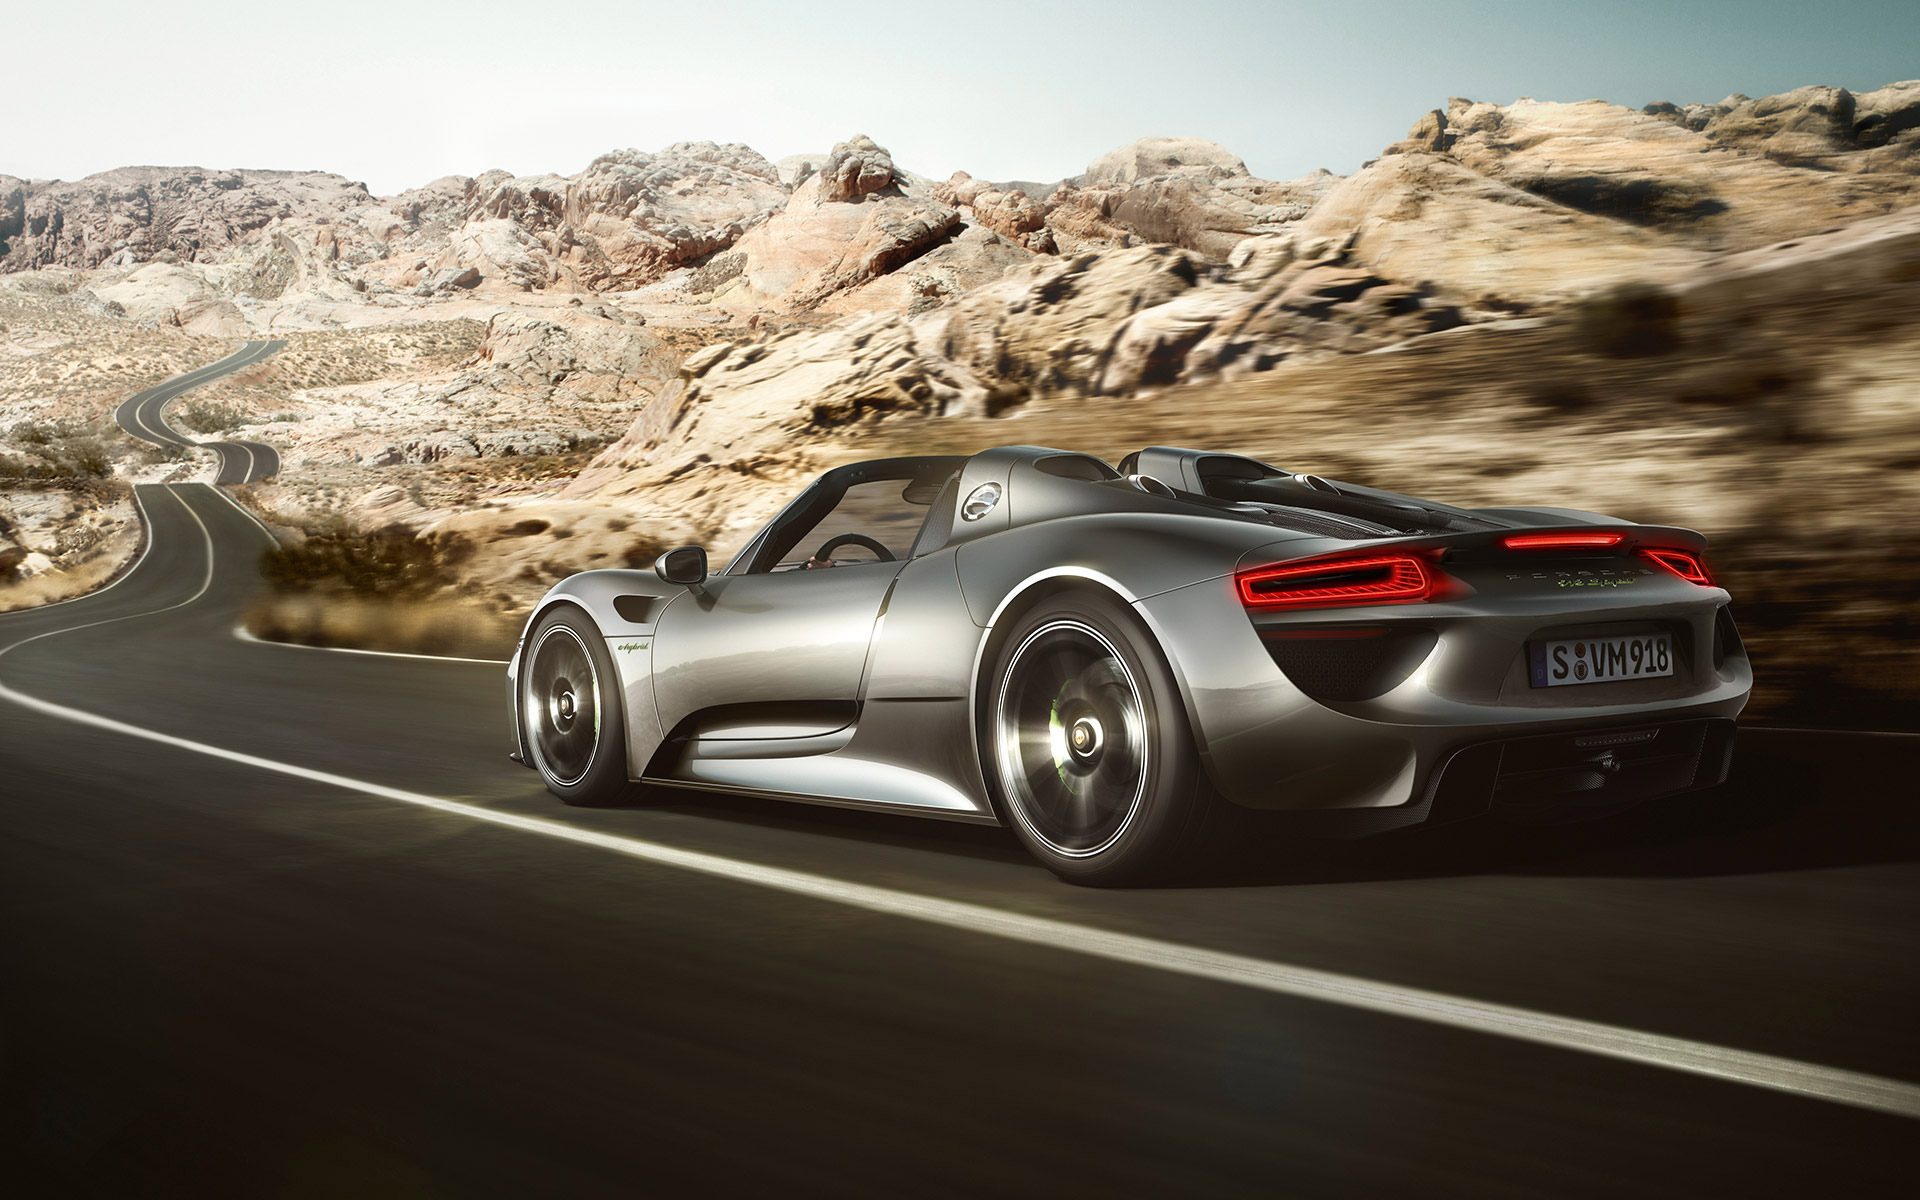 larger view create wallpaper front acceleration 2015 porsche 918 spyder - Porsche Spyder 918 Wallpaper